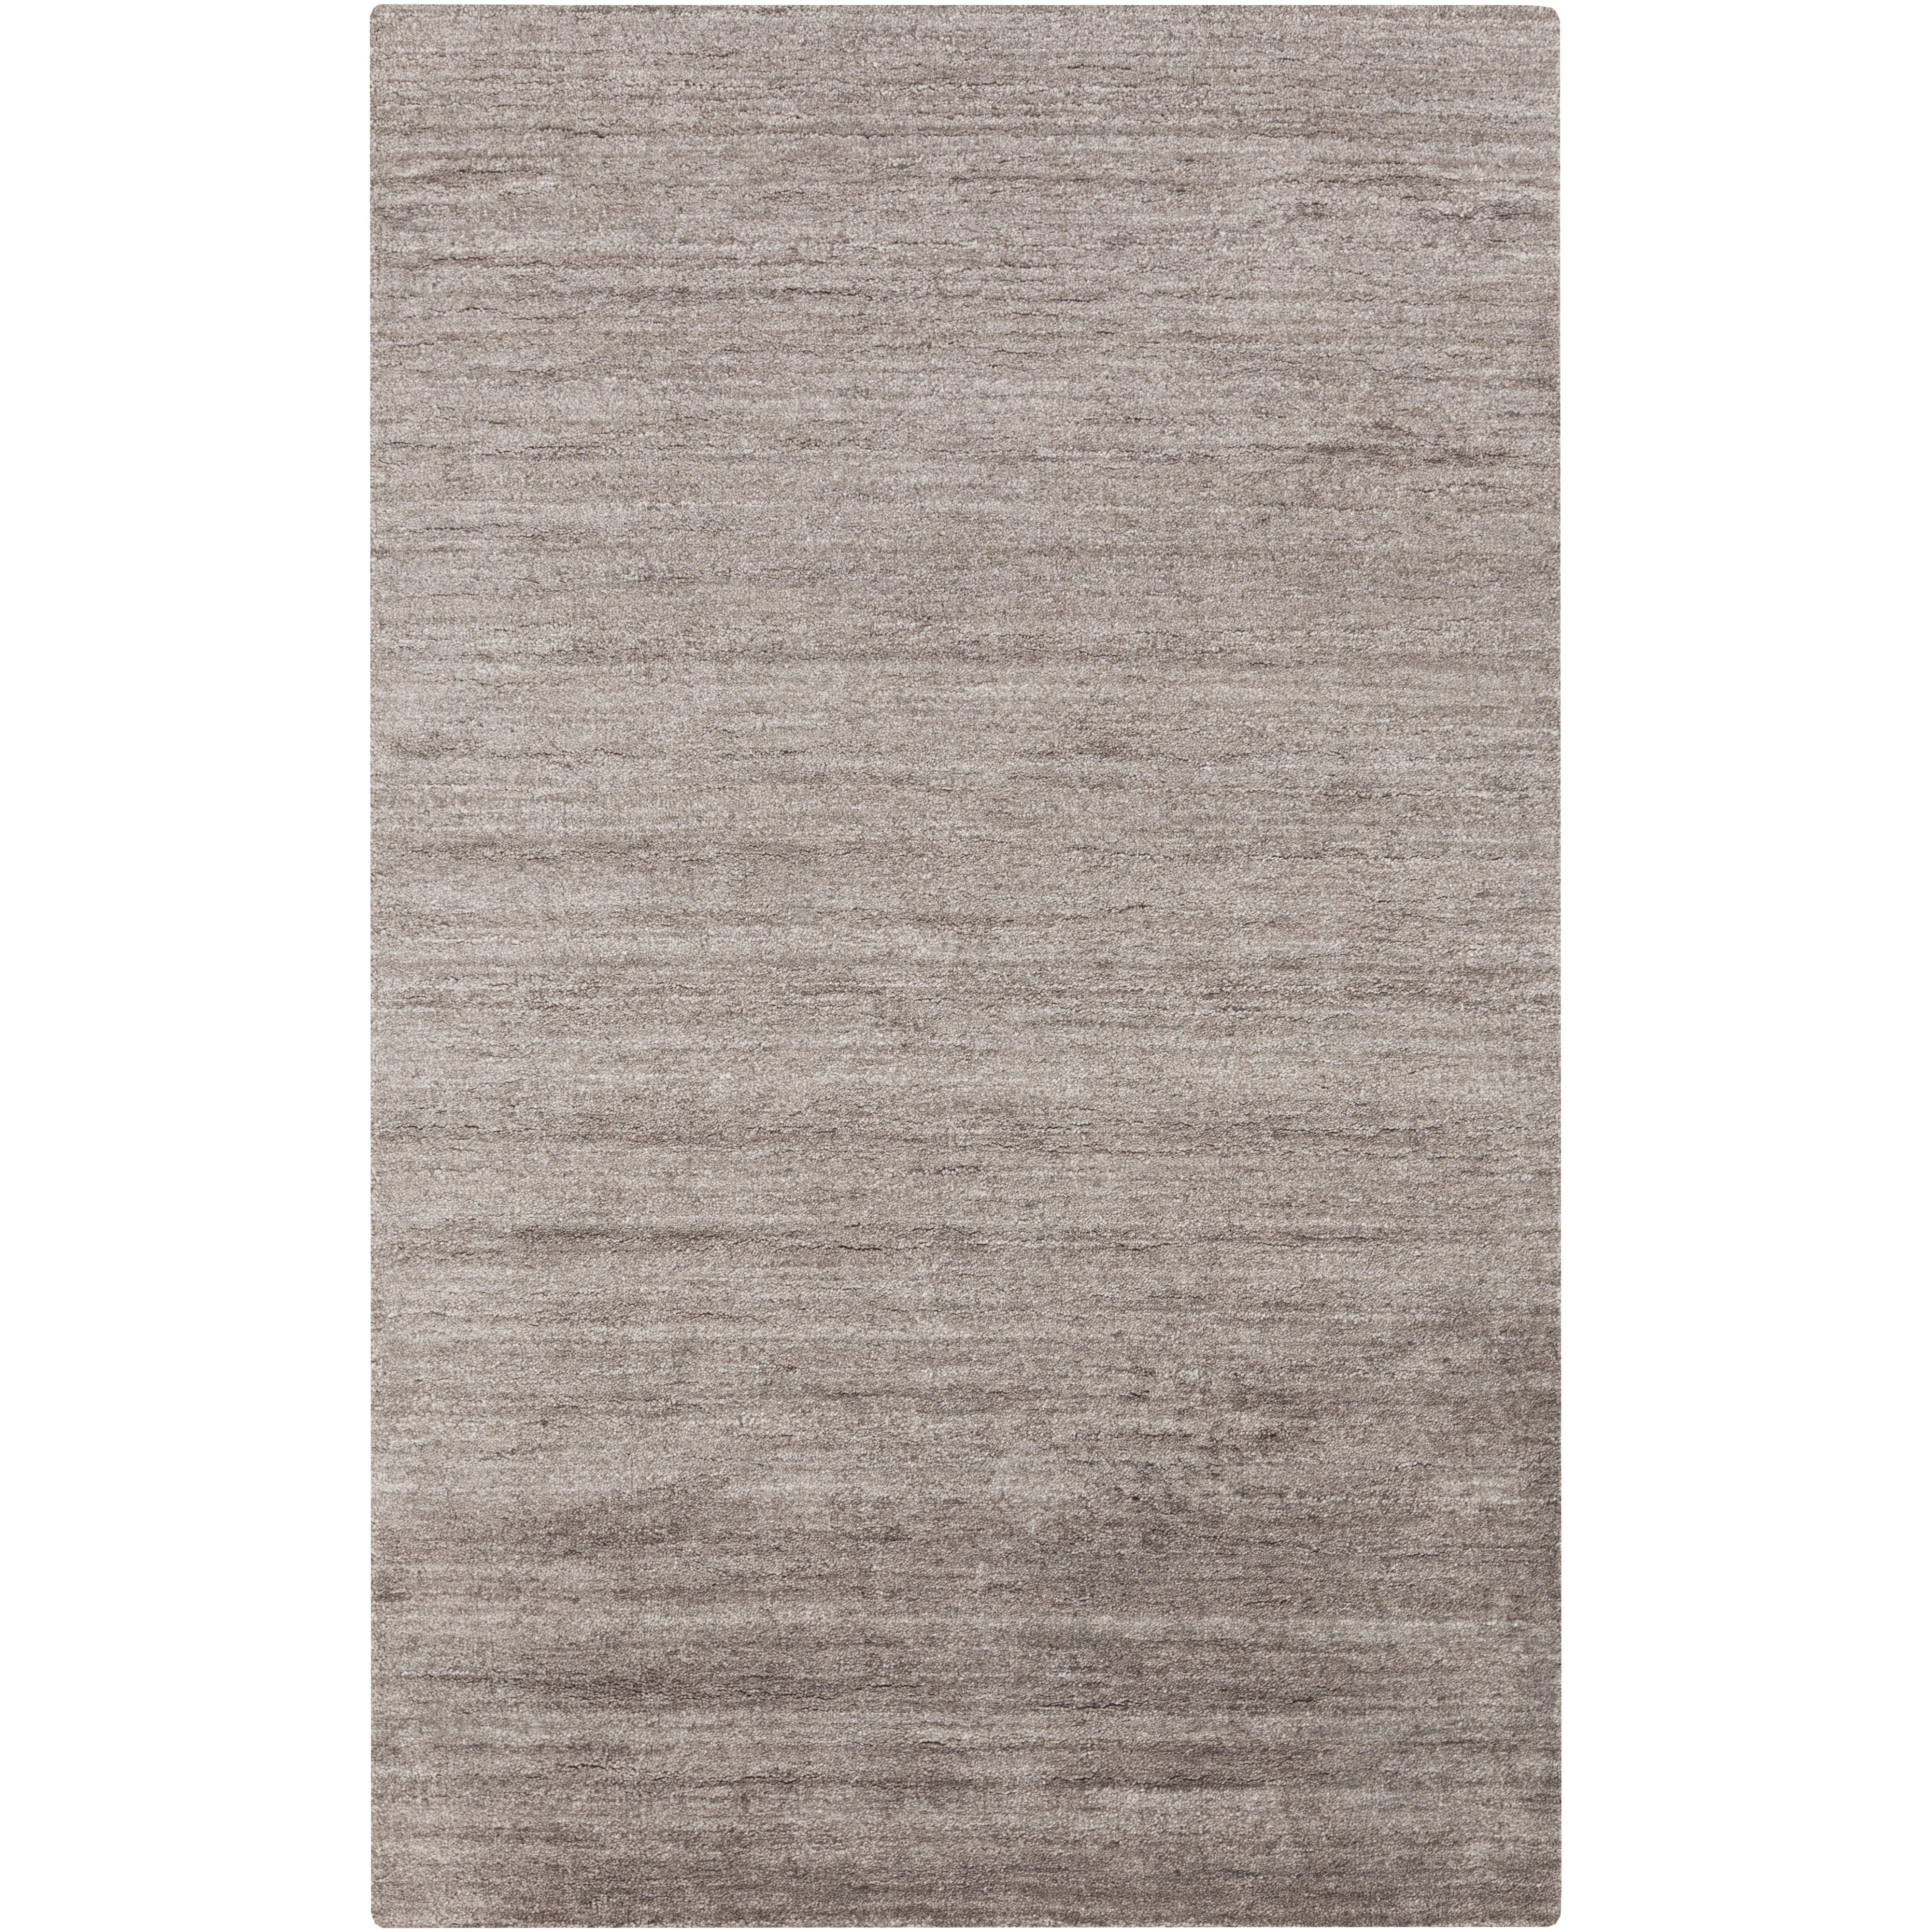 Surya Rugs Haize 5' x 8' - Item Number: HAZ6008-58